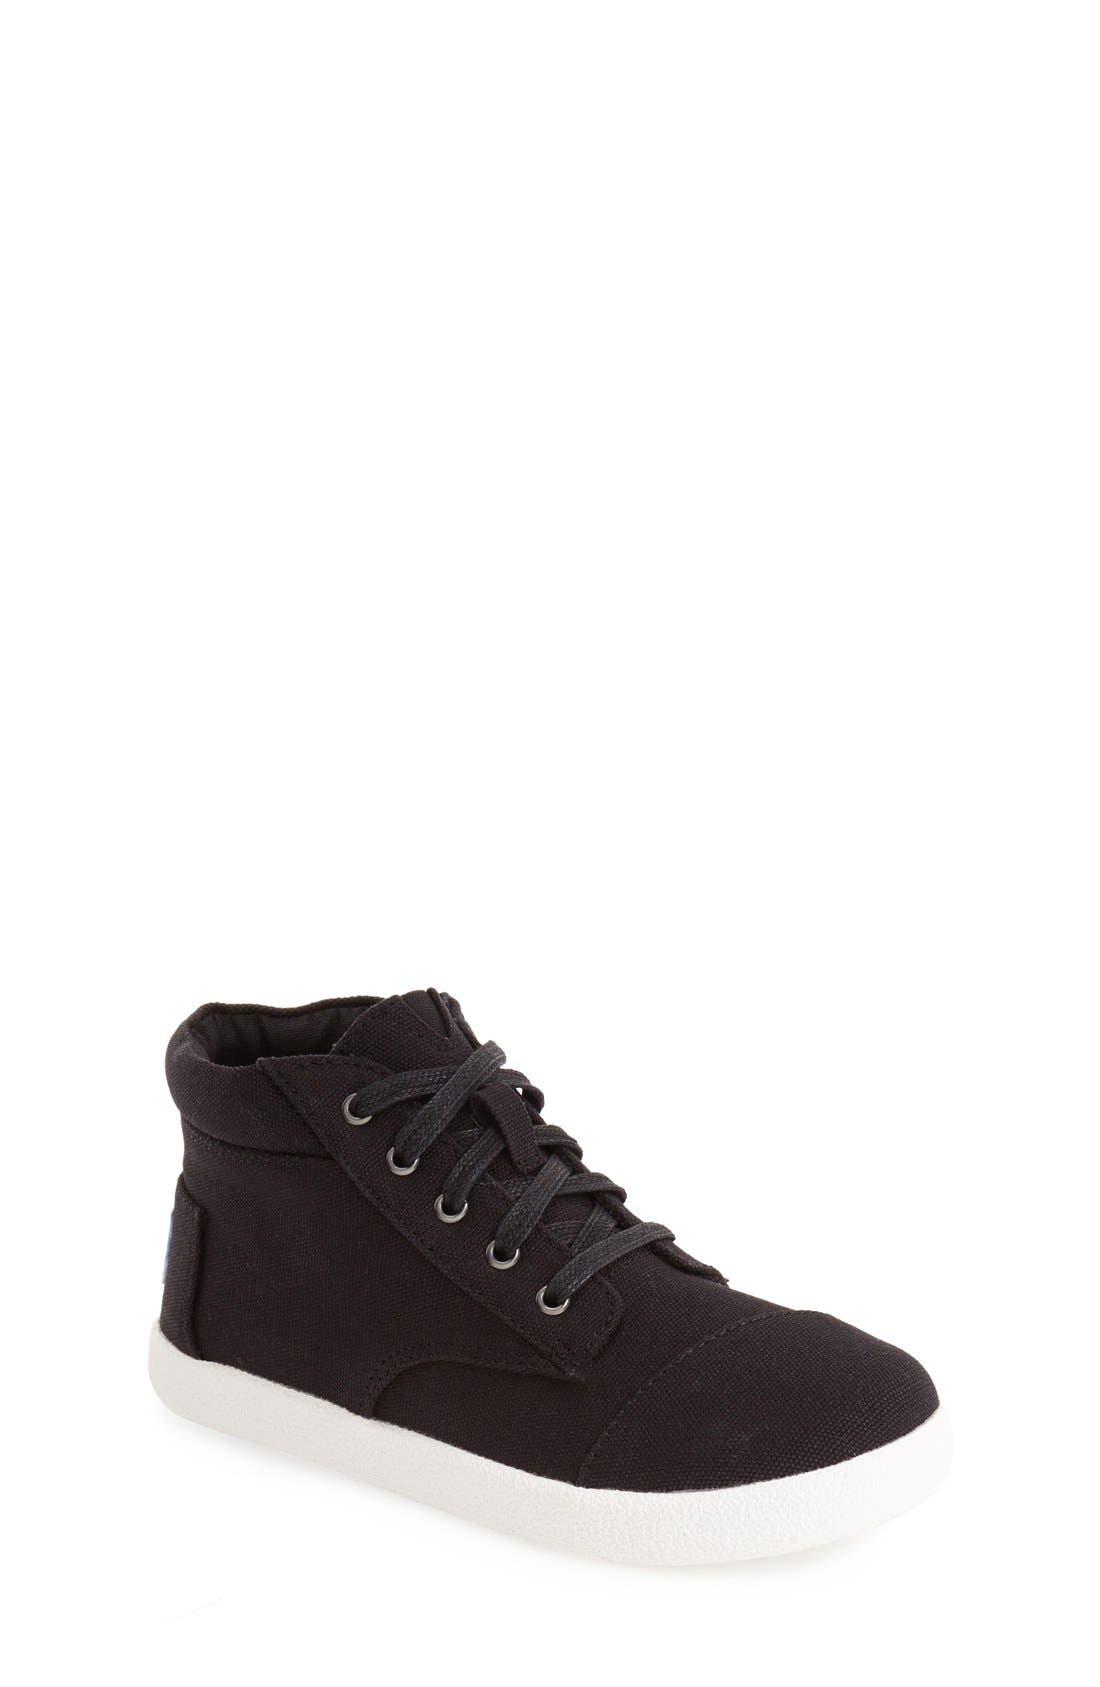 'Paseo' High Top Sneaker,                         Main,                         color, Black